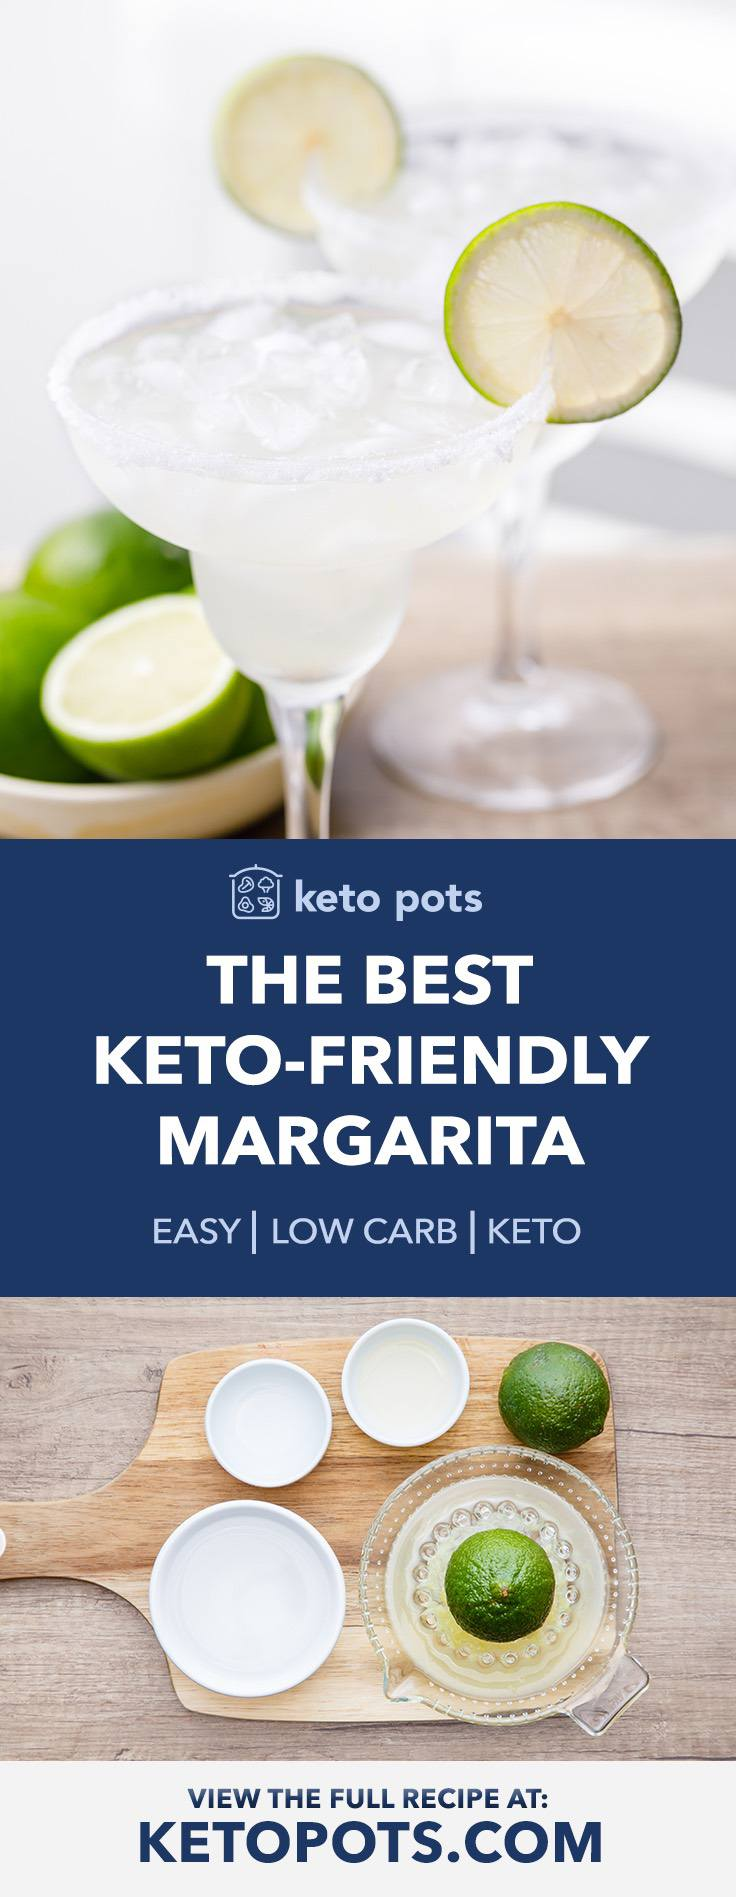 How to Make the Best Keto-friendly Margarita